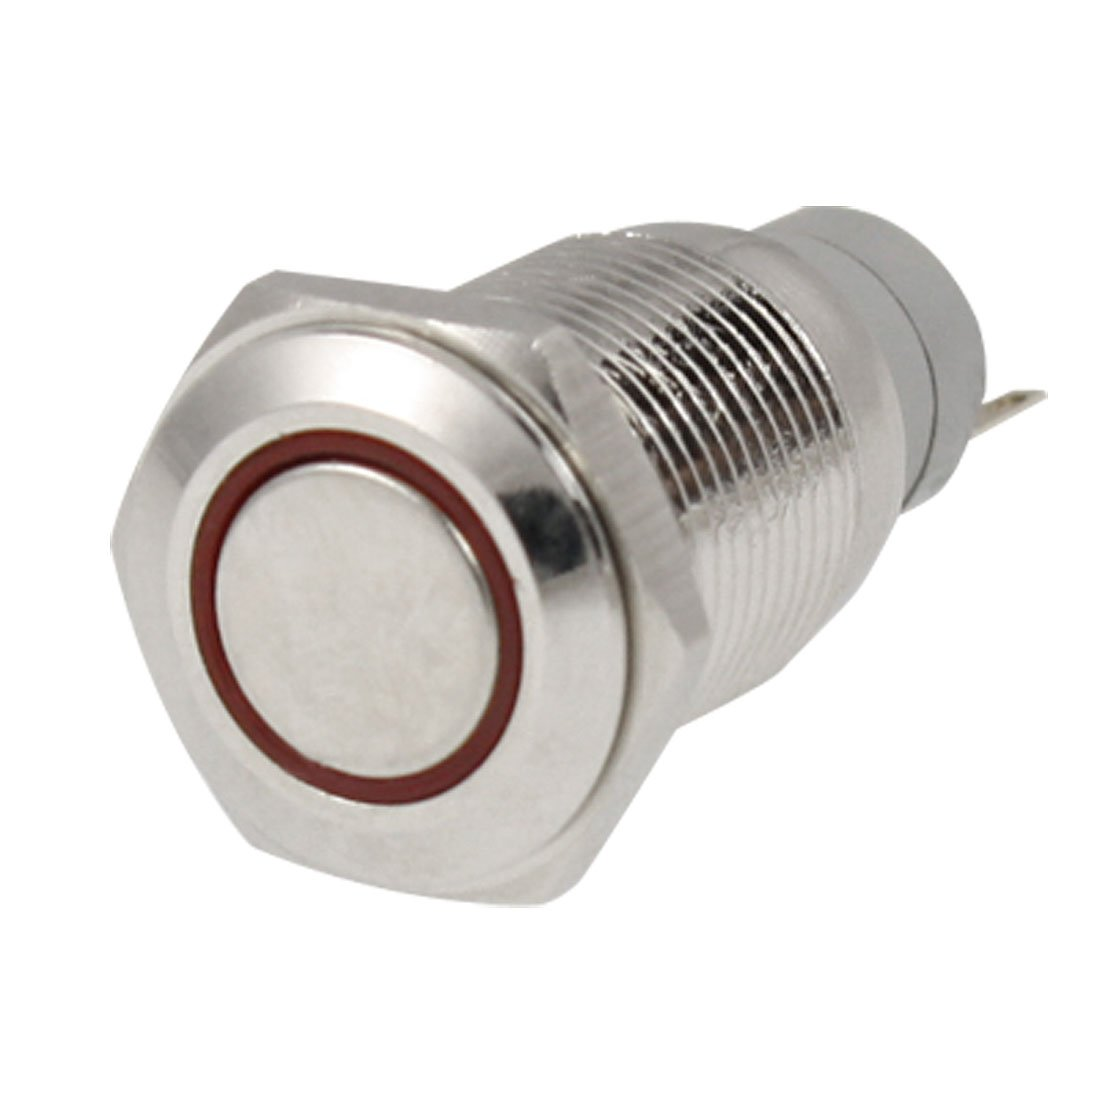 popular momentary push button switch buy cheap momentary push jfbl 2x angel eye red led light 16mm 12v metal momentary push button switch